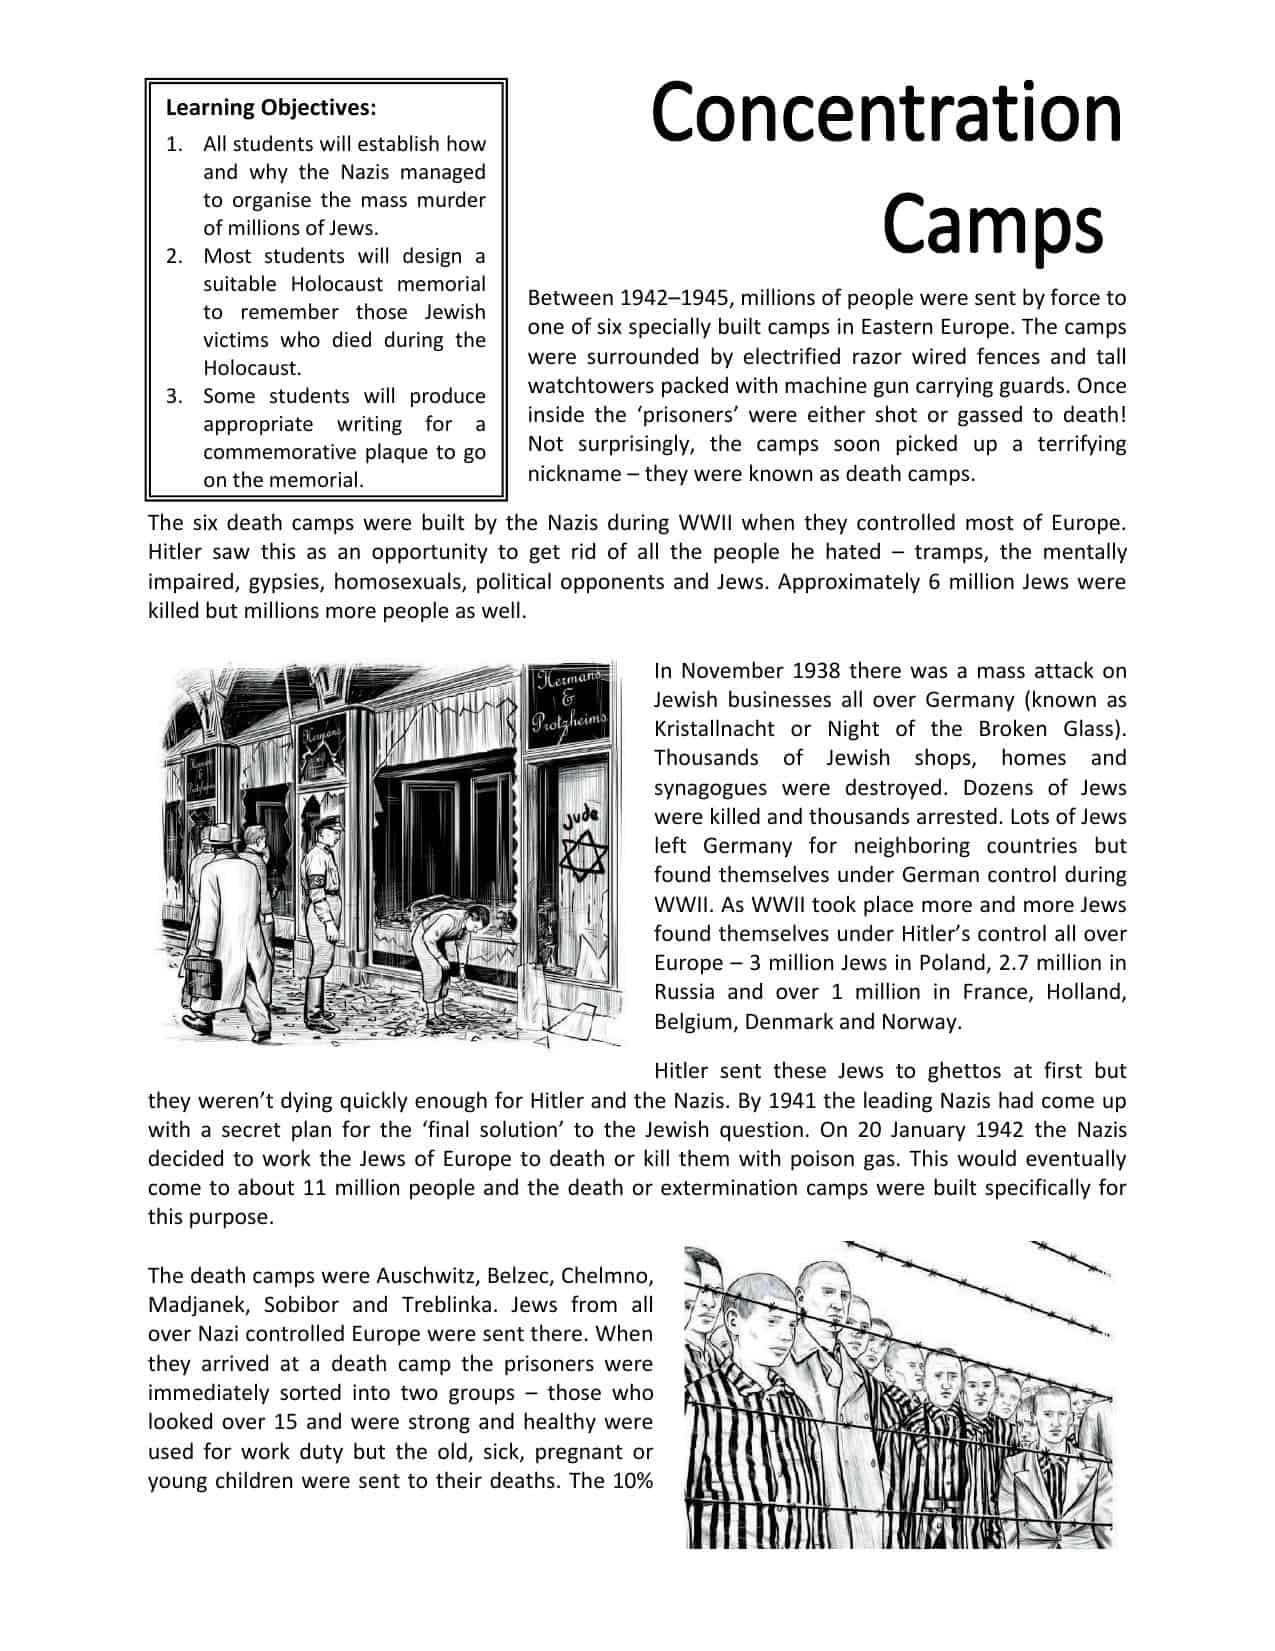 Concentration Camp Activity Worksheet